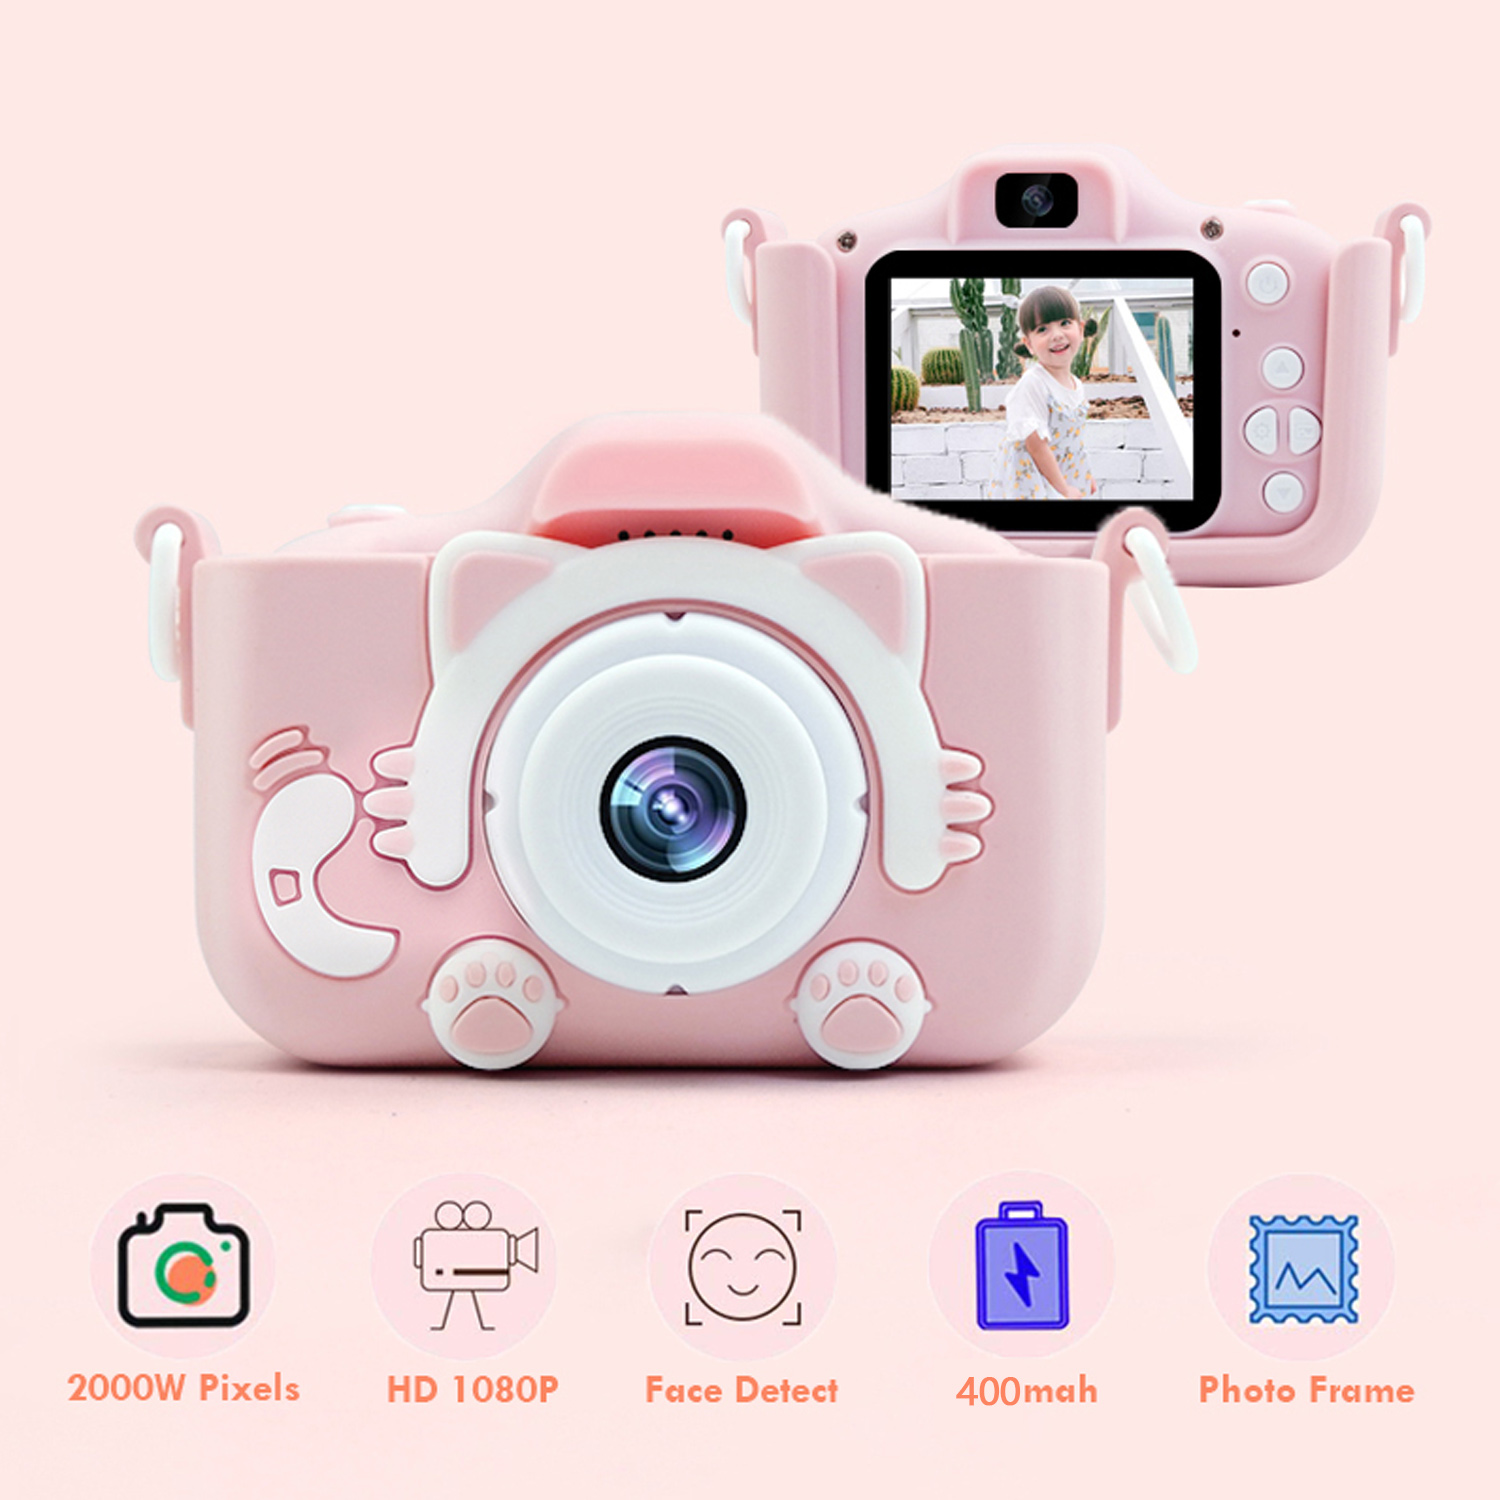 1080P 2000W Mini Cute Kids Digital Camcorder Video Camera Toys Built-in Games for Children Toddler Christmas Birthday Gifts